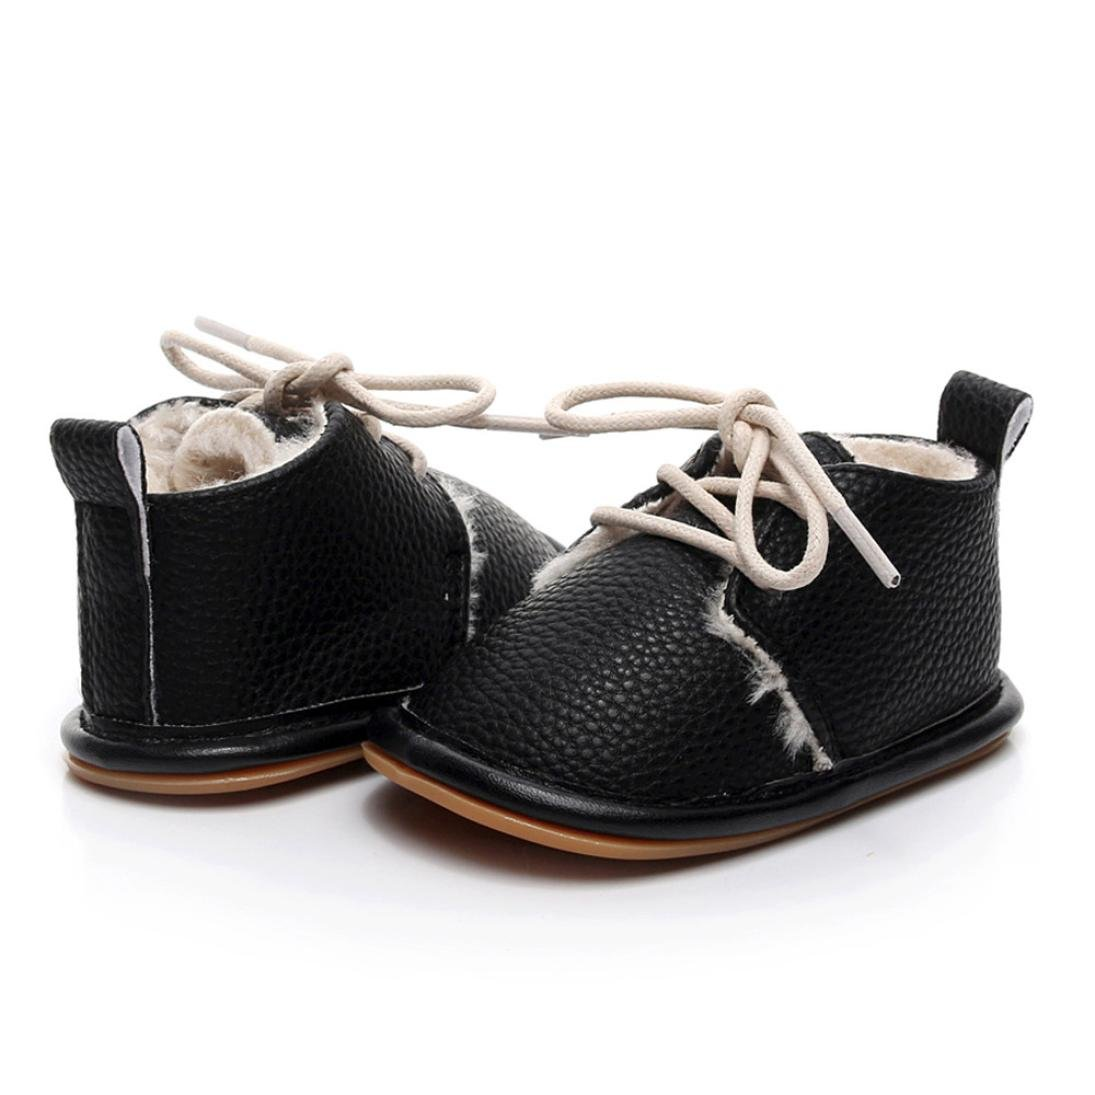 Wanshop for 0-2 Years Old Kids Fashion Newborn Infant Baby Girls Boys Solid Crib Shoes Soft Sole Anti-Slip Lace-Up Sneakers